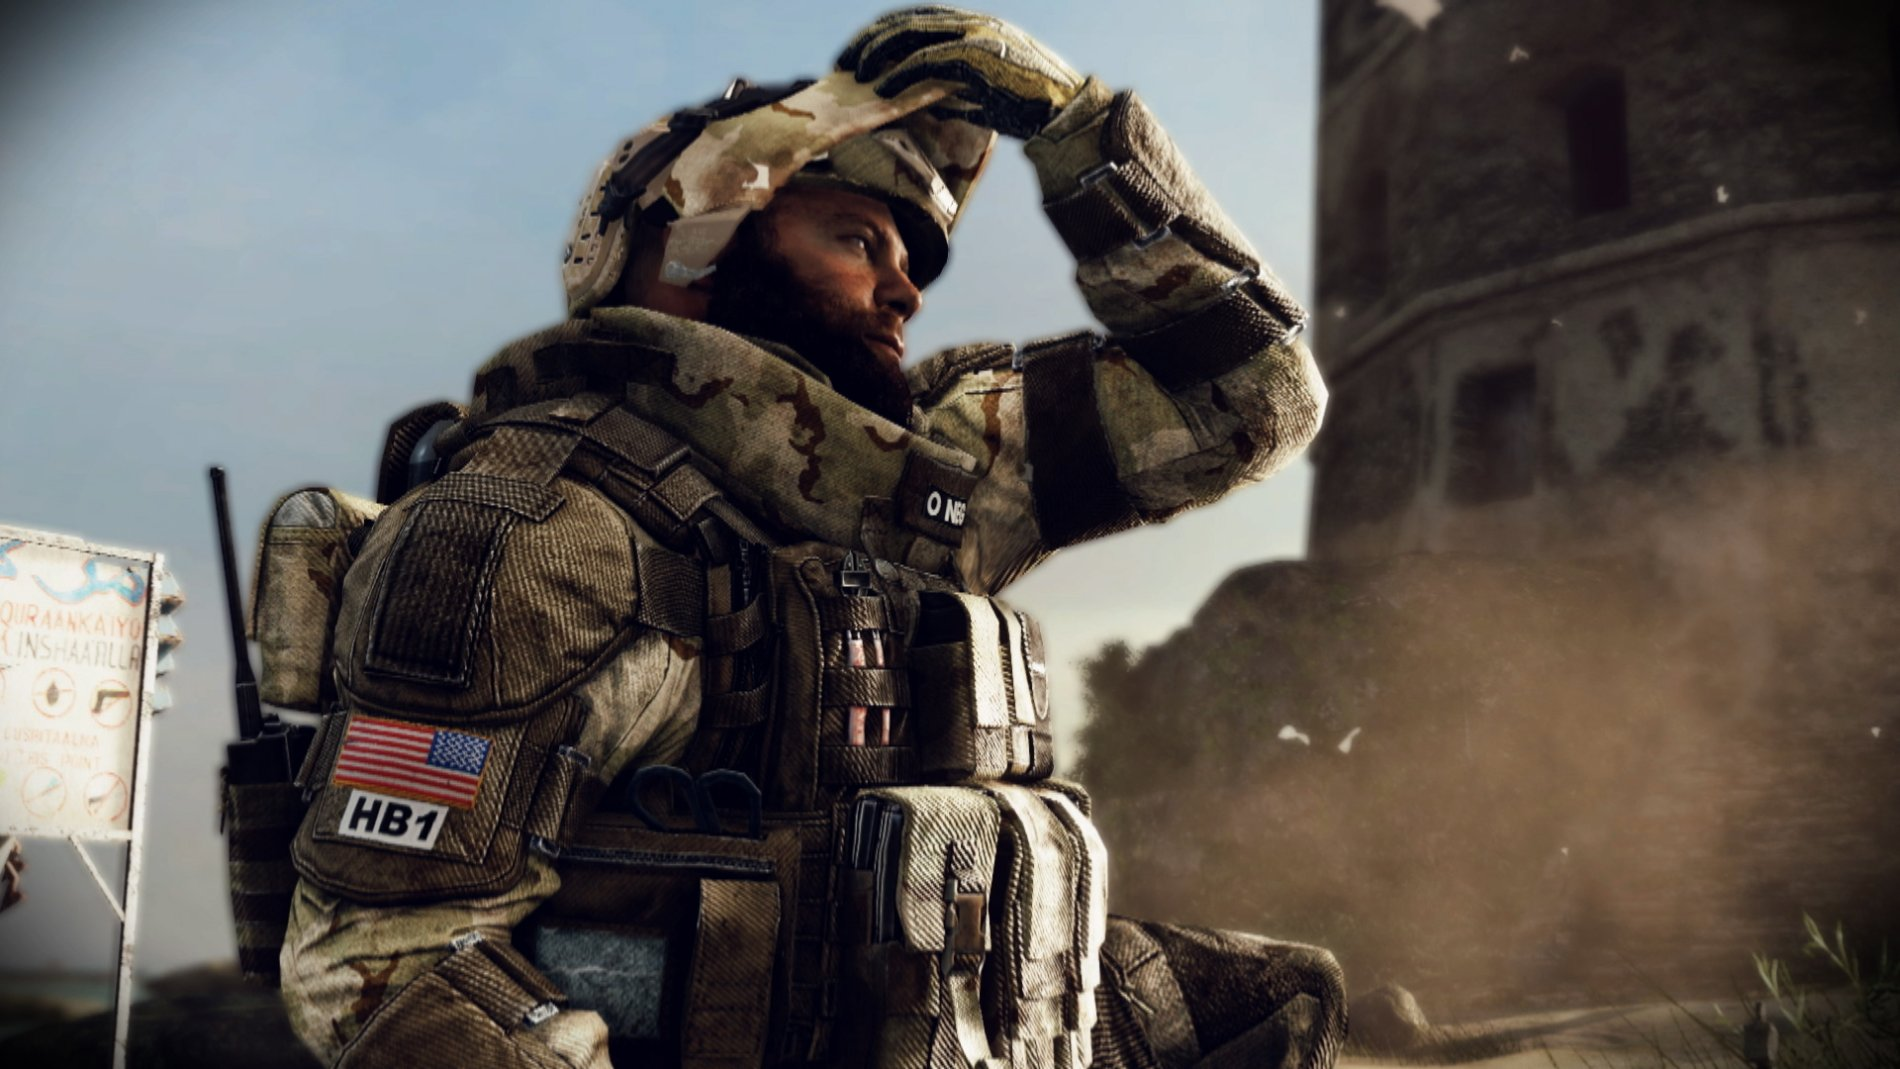 file_3674_medal-of-honor-warfighter-hd-images